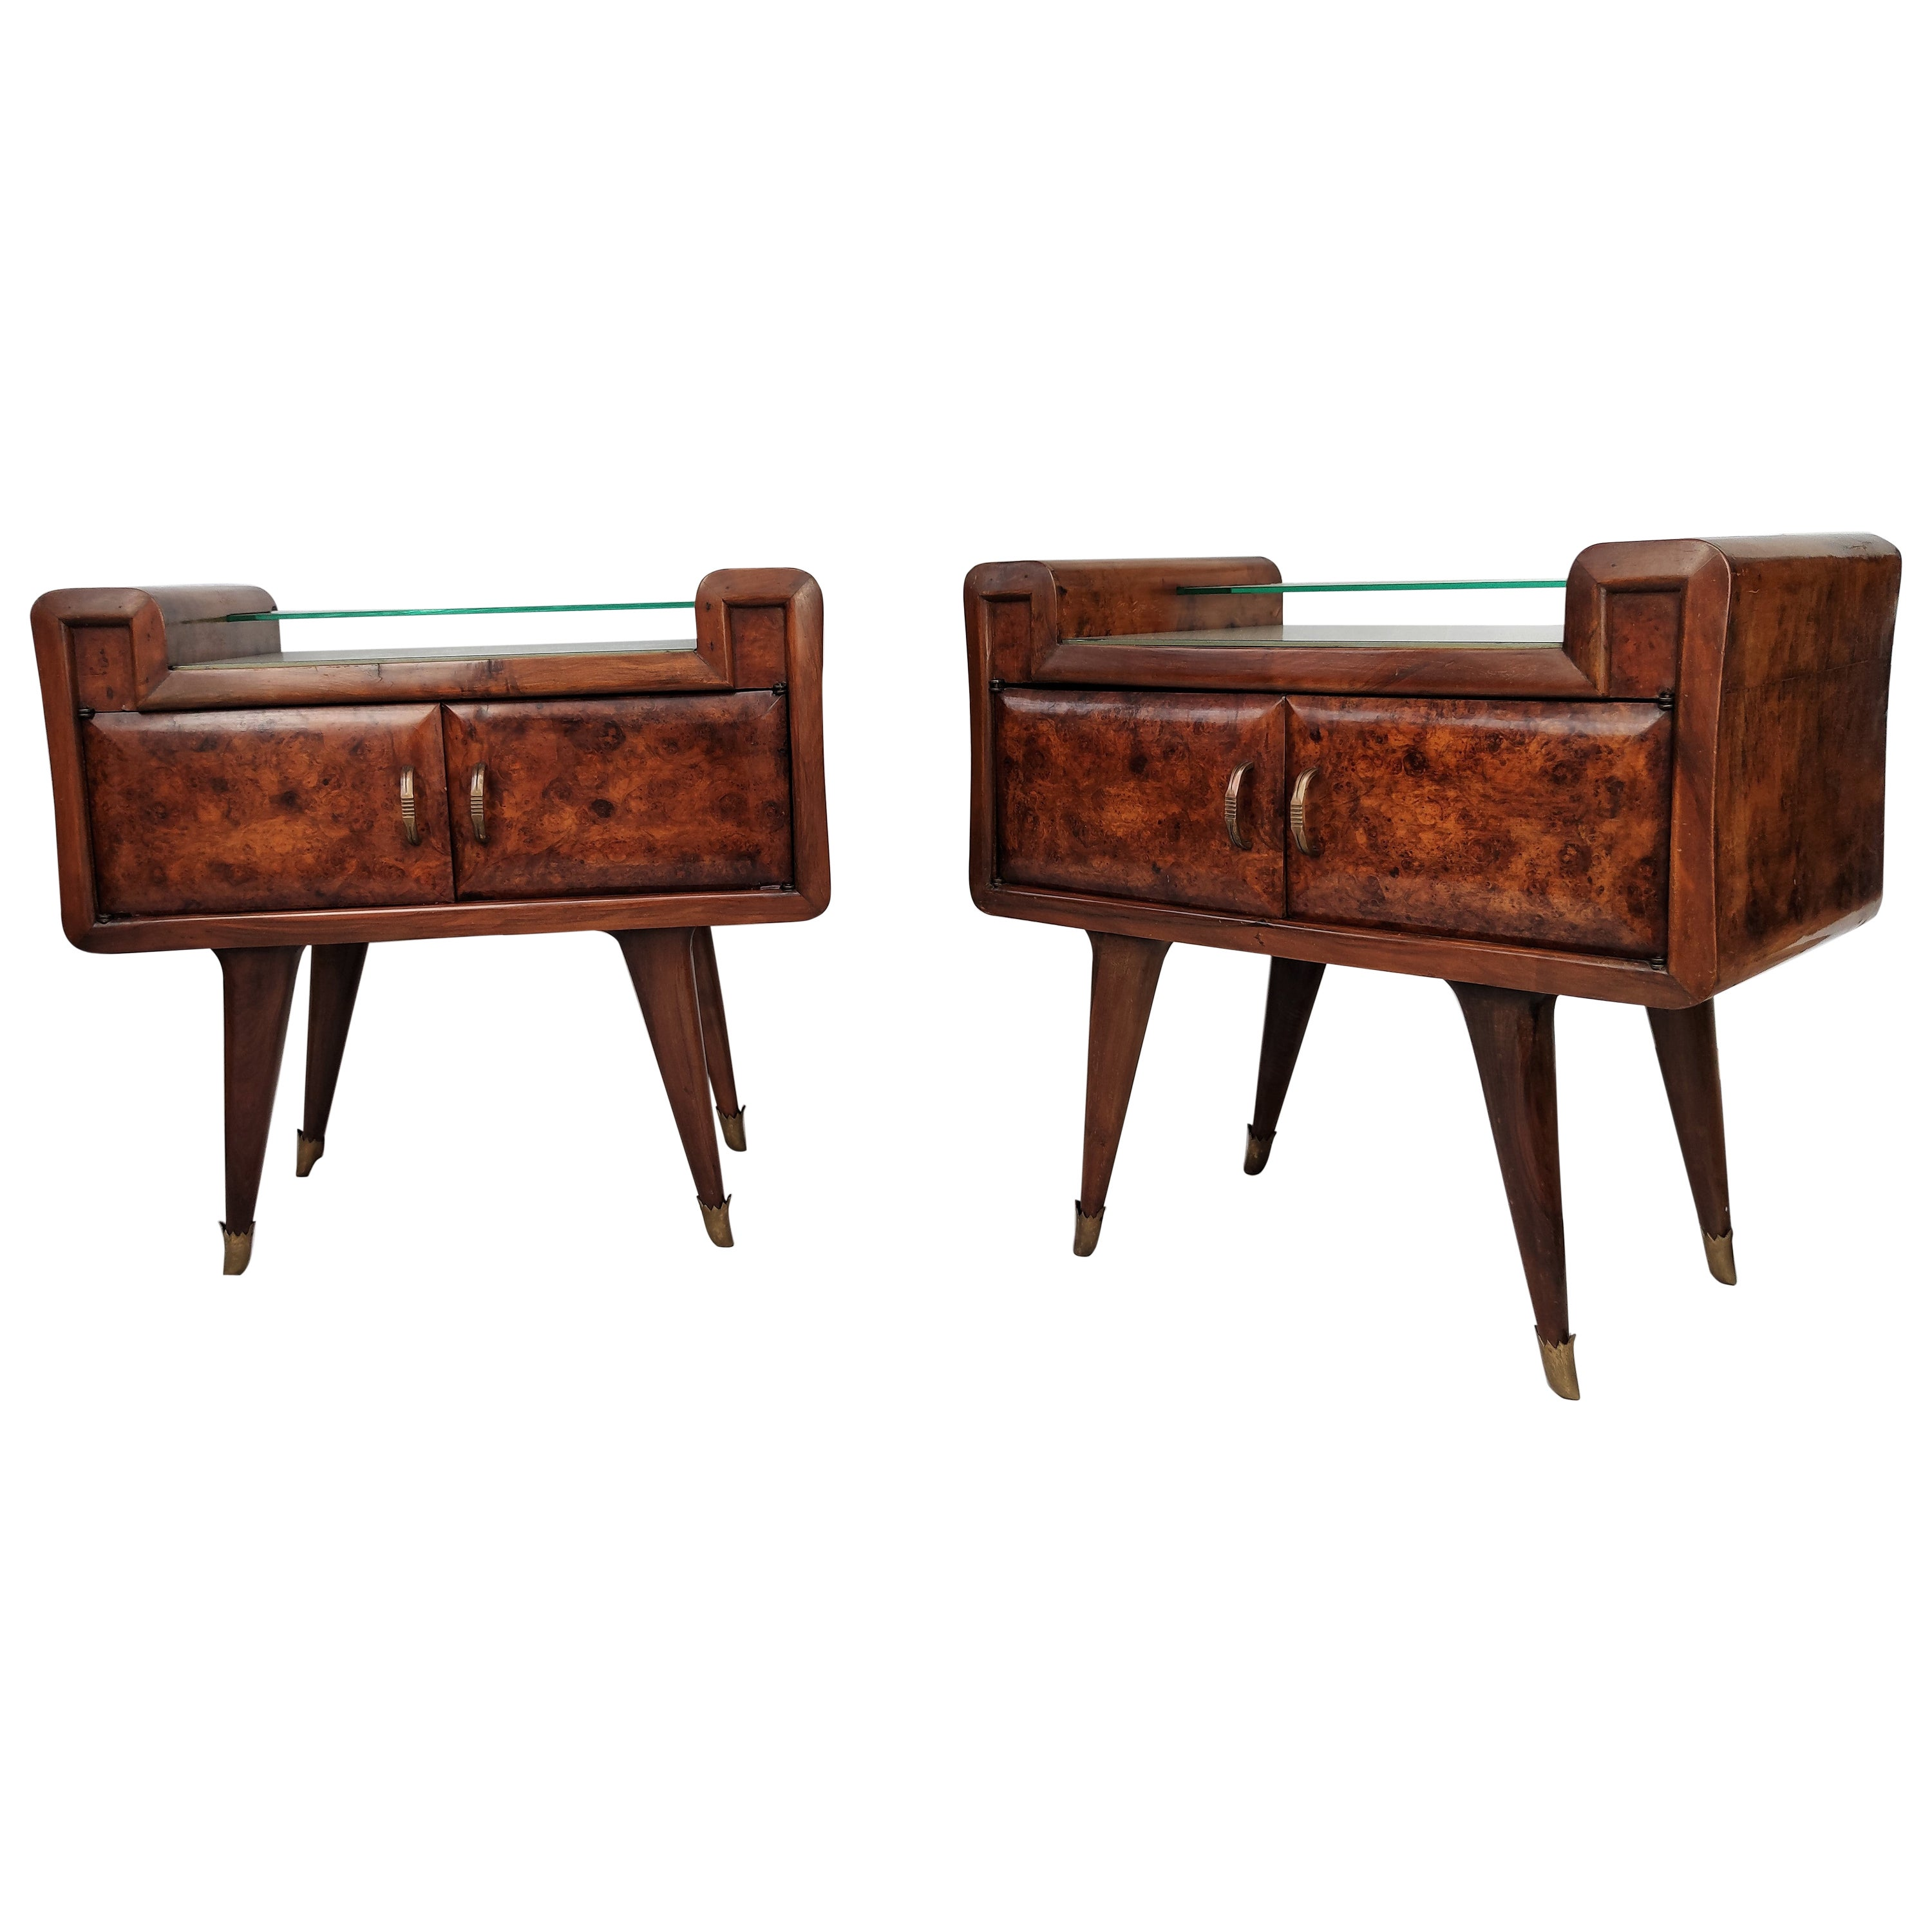 Italian Midcentury Art Deco Nightstands Bed Side Tables Briar Wood Brass & Glass